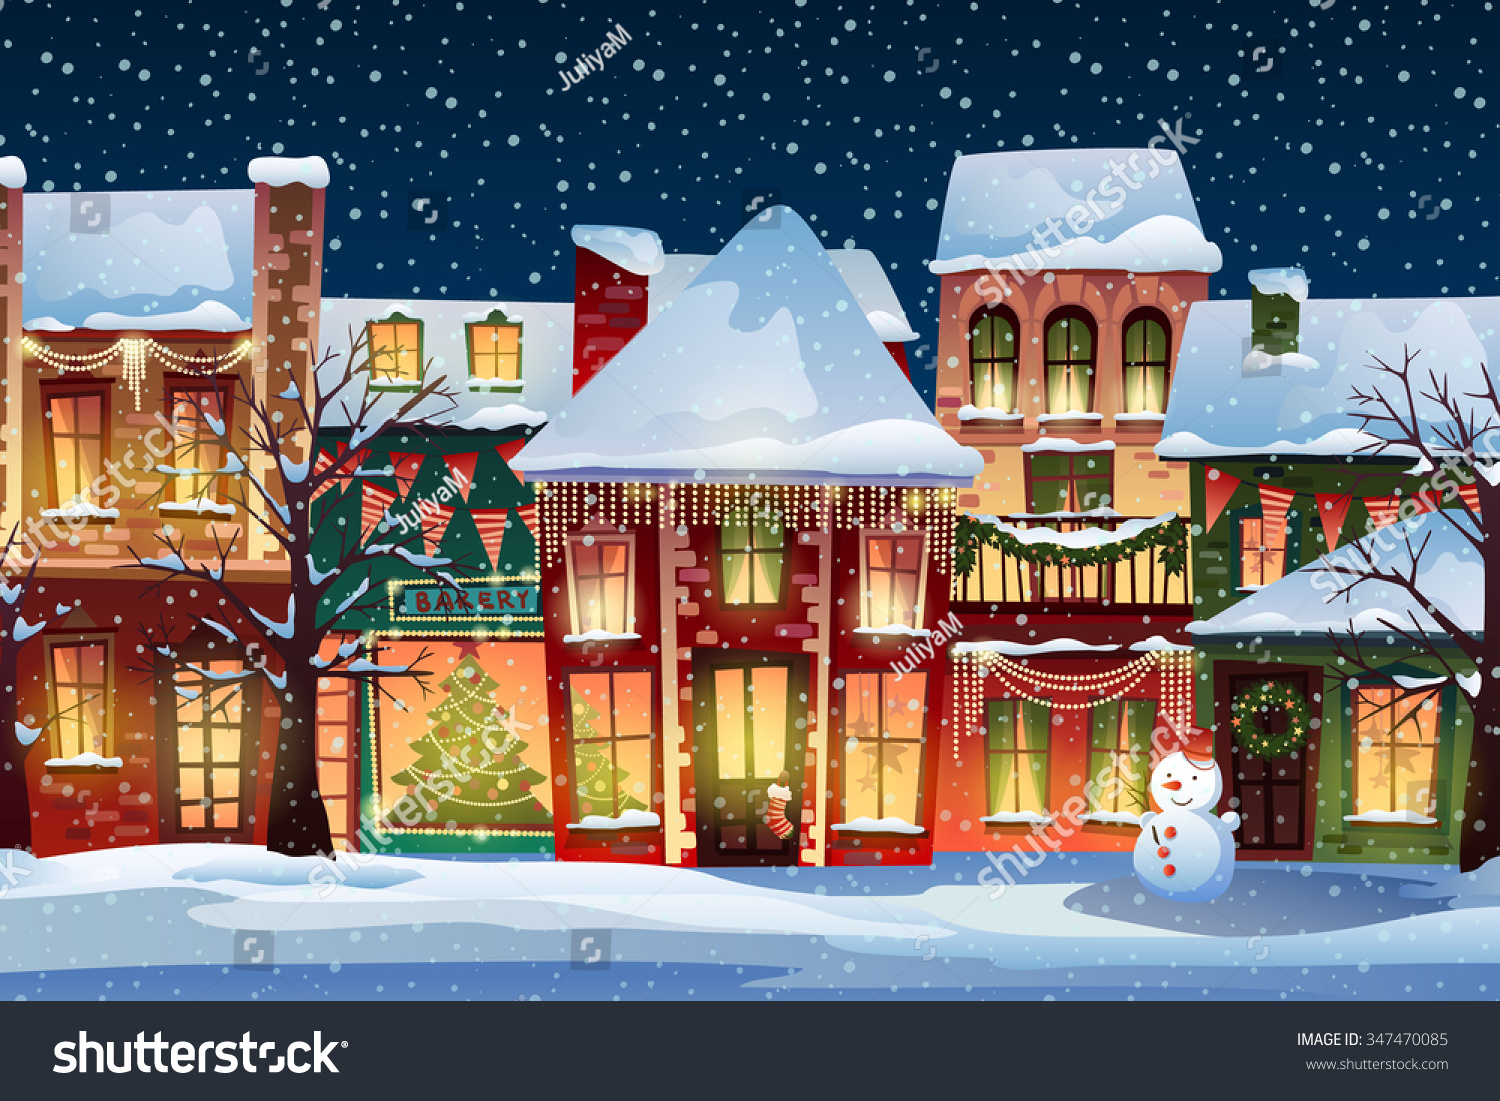 Winter landscapechristmas background fairy tale houses for Christmas landscape images